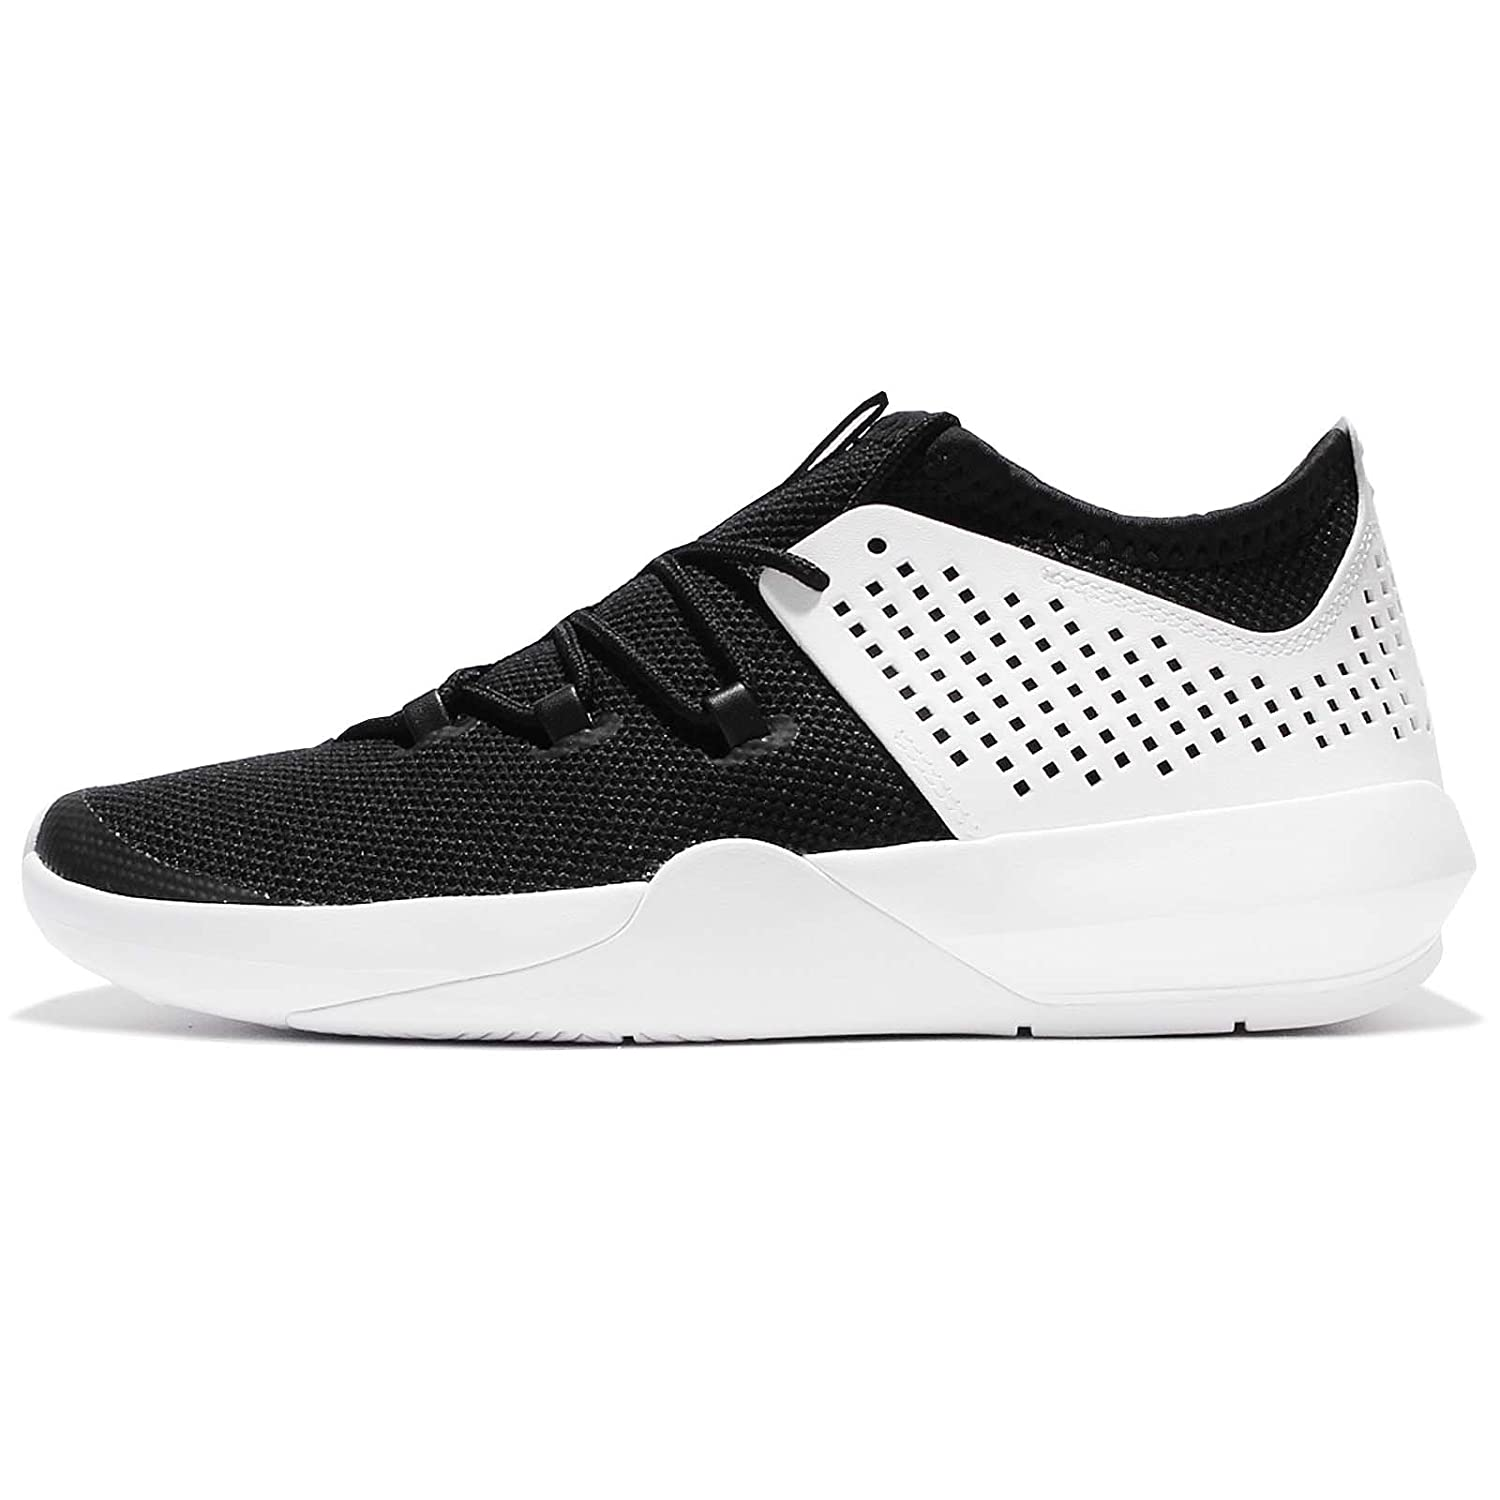 NIKE Air Jordan Express Mens Trainers 897988 Sneakers Shoes (UK 11 US 12 EU 46, Black White 010)